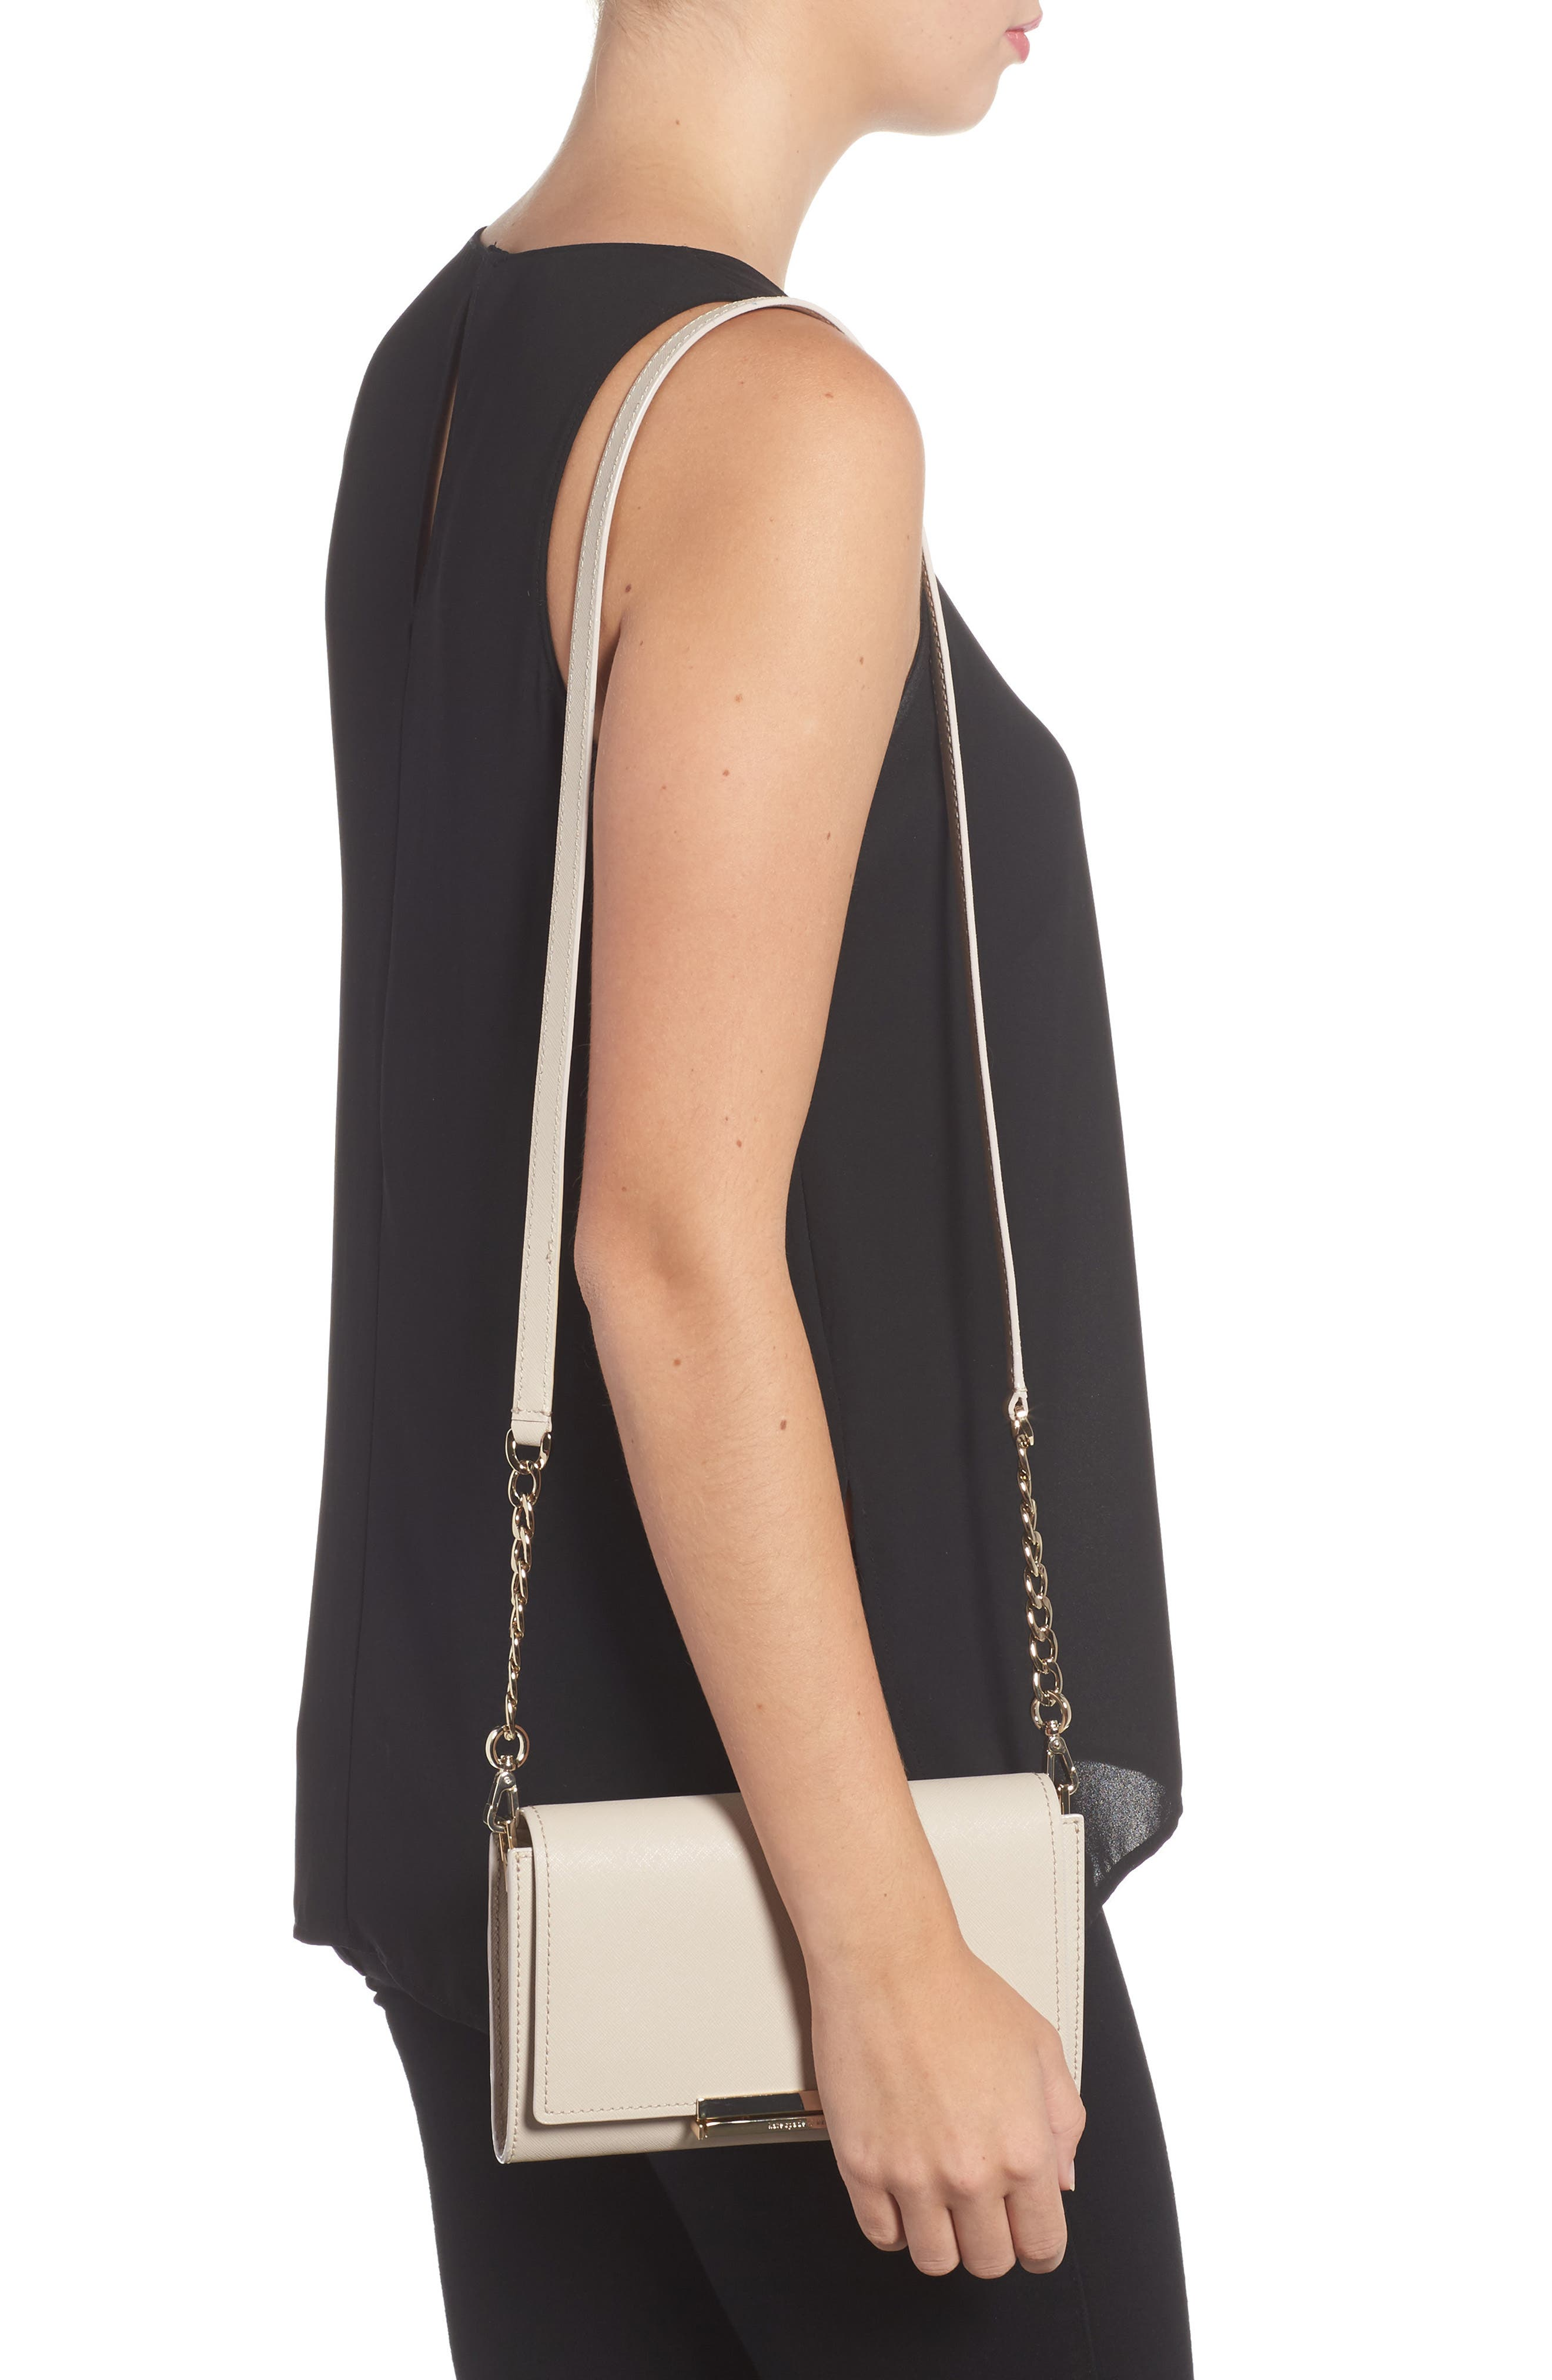 make it mine - camila leather clutch,                             Alternate thumbnail 4, color,